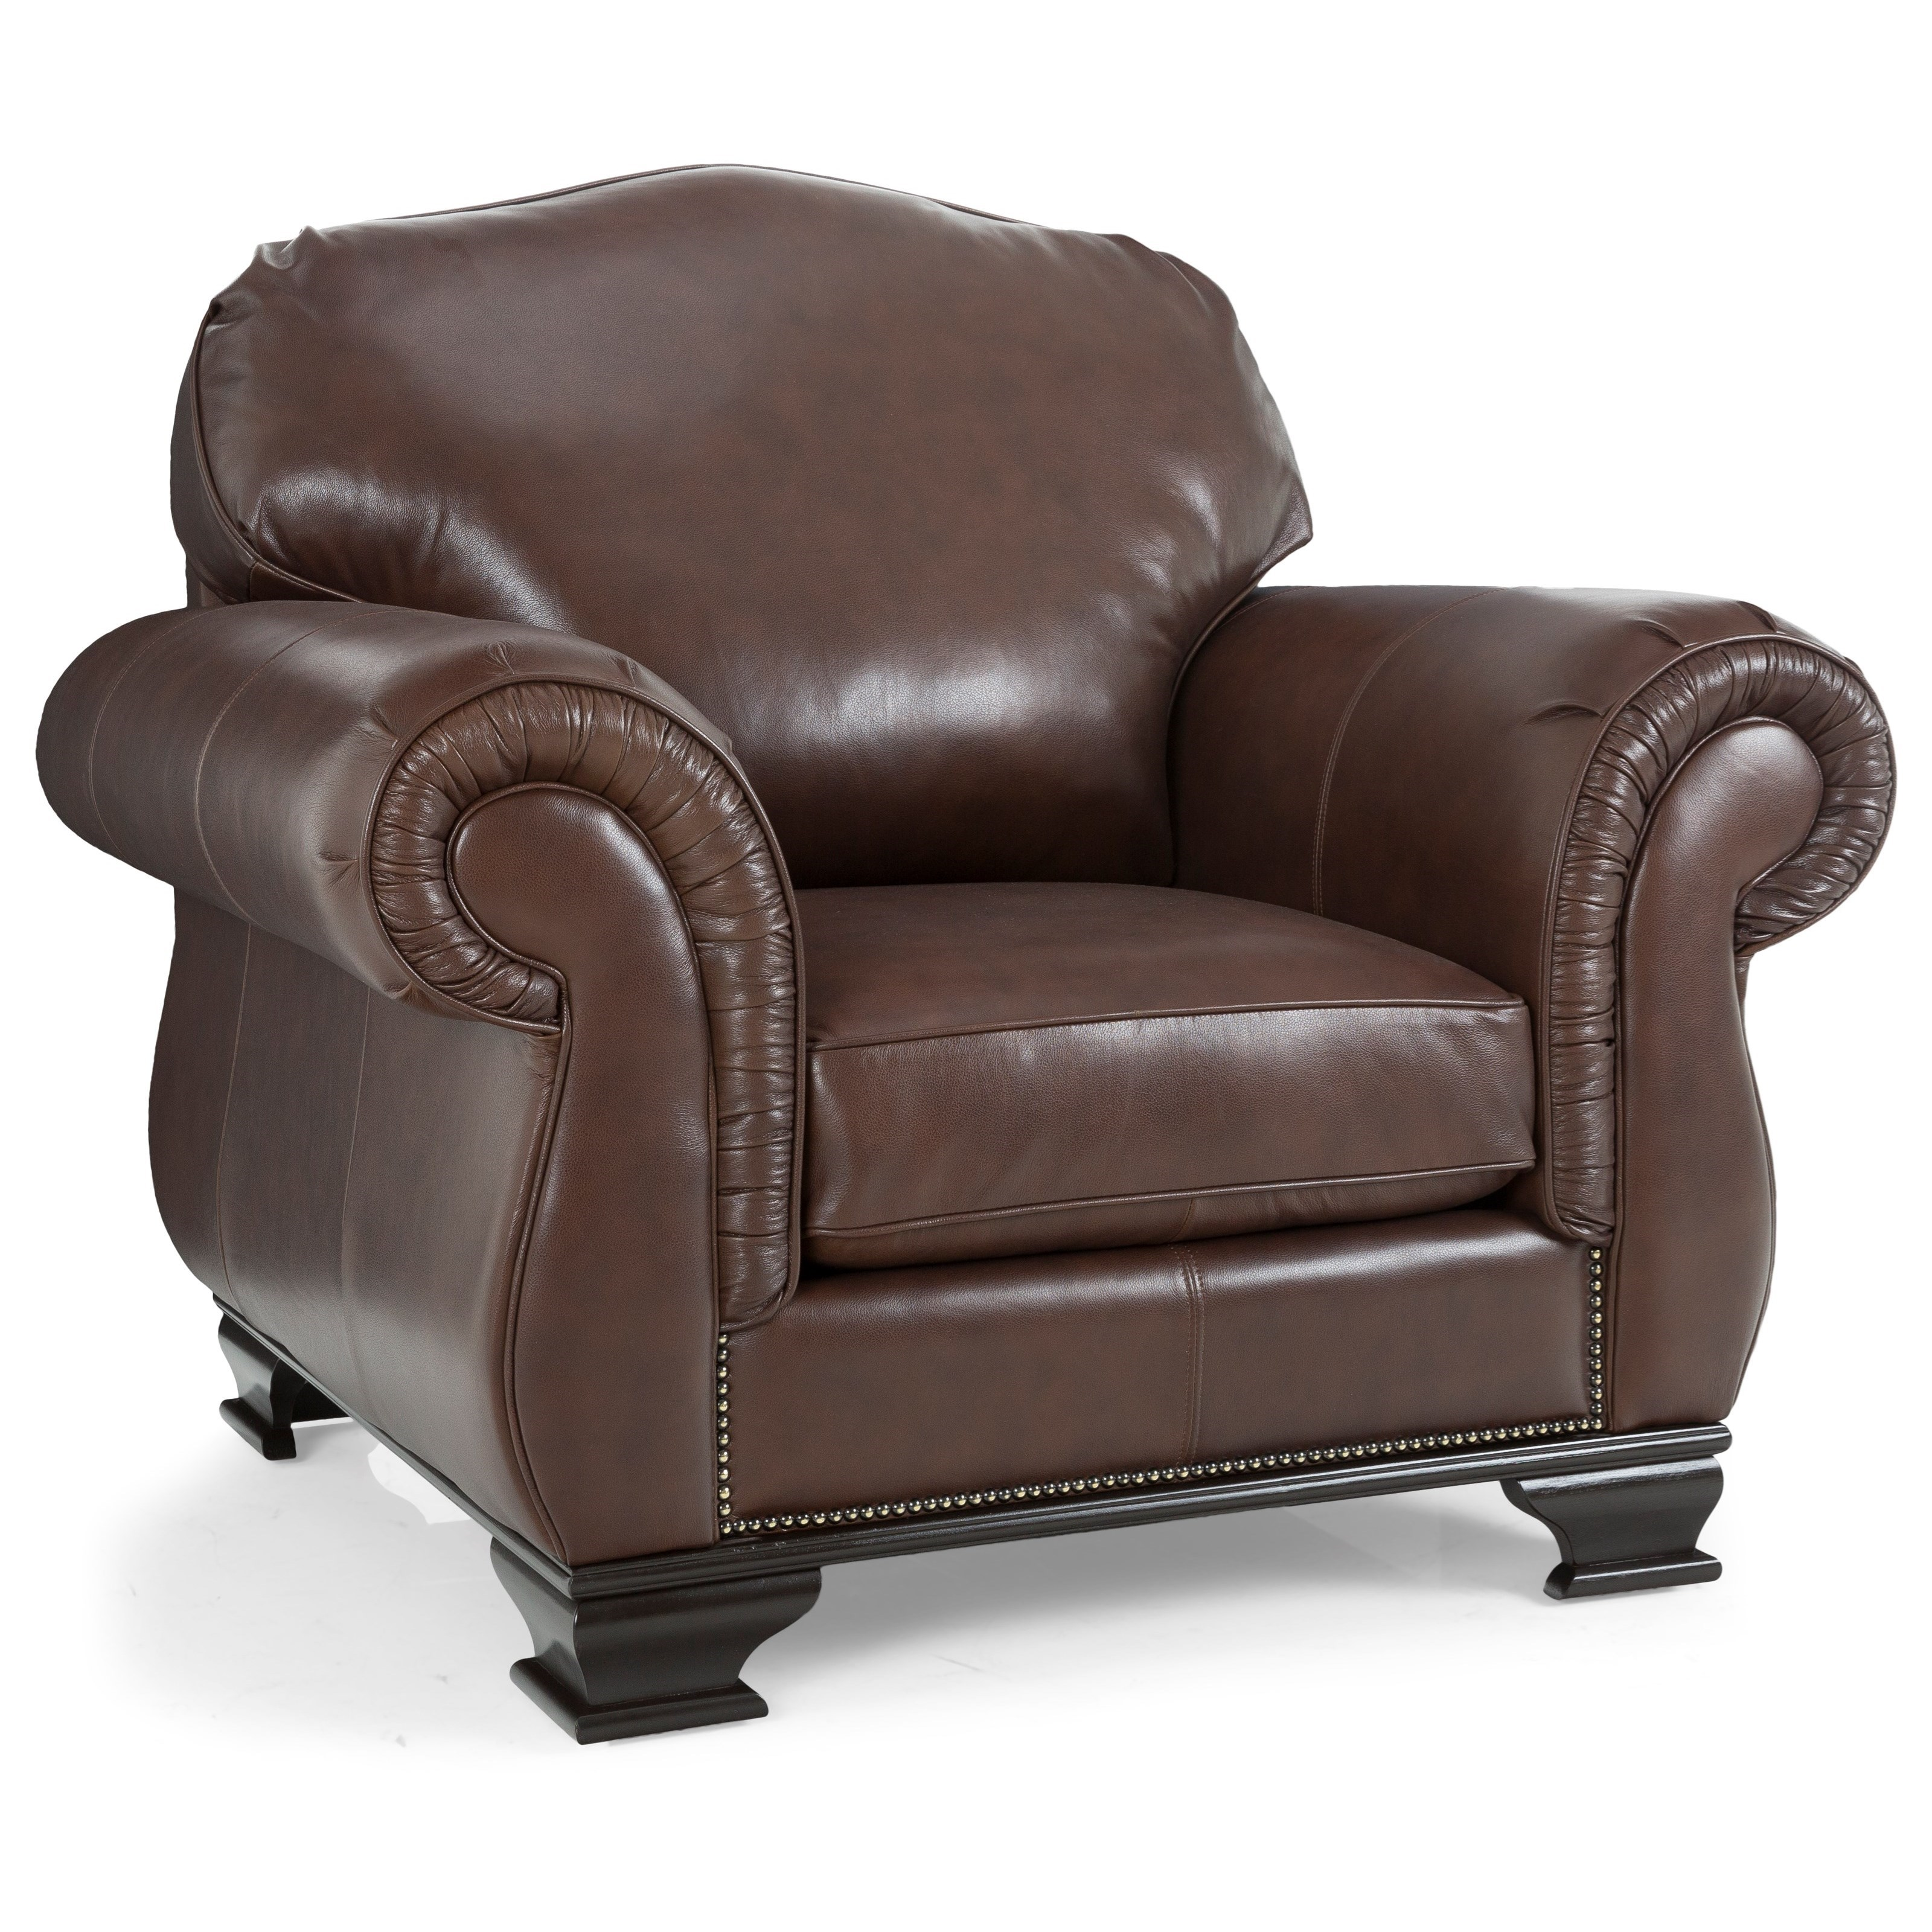 3933 Chair by Decor-Rest at Reid's Furniture